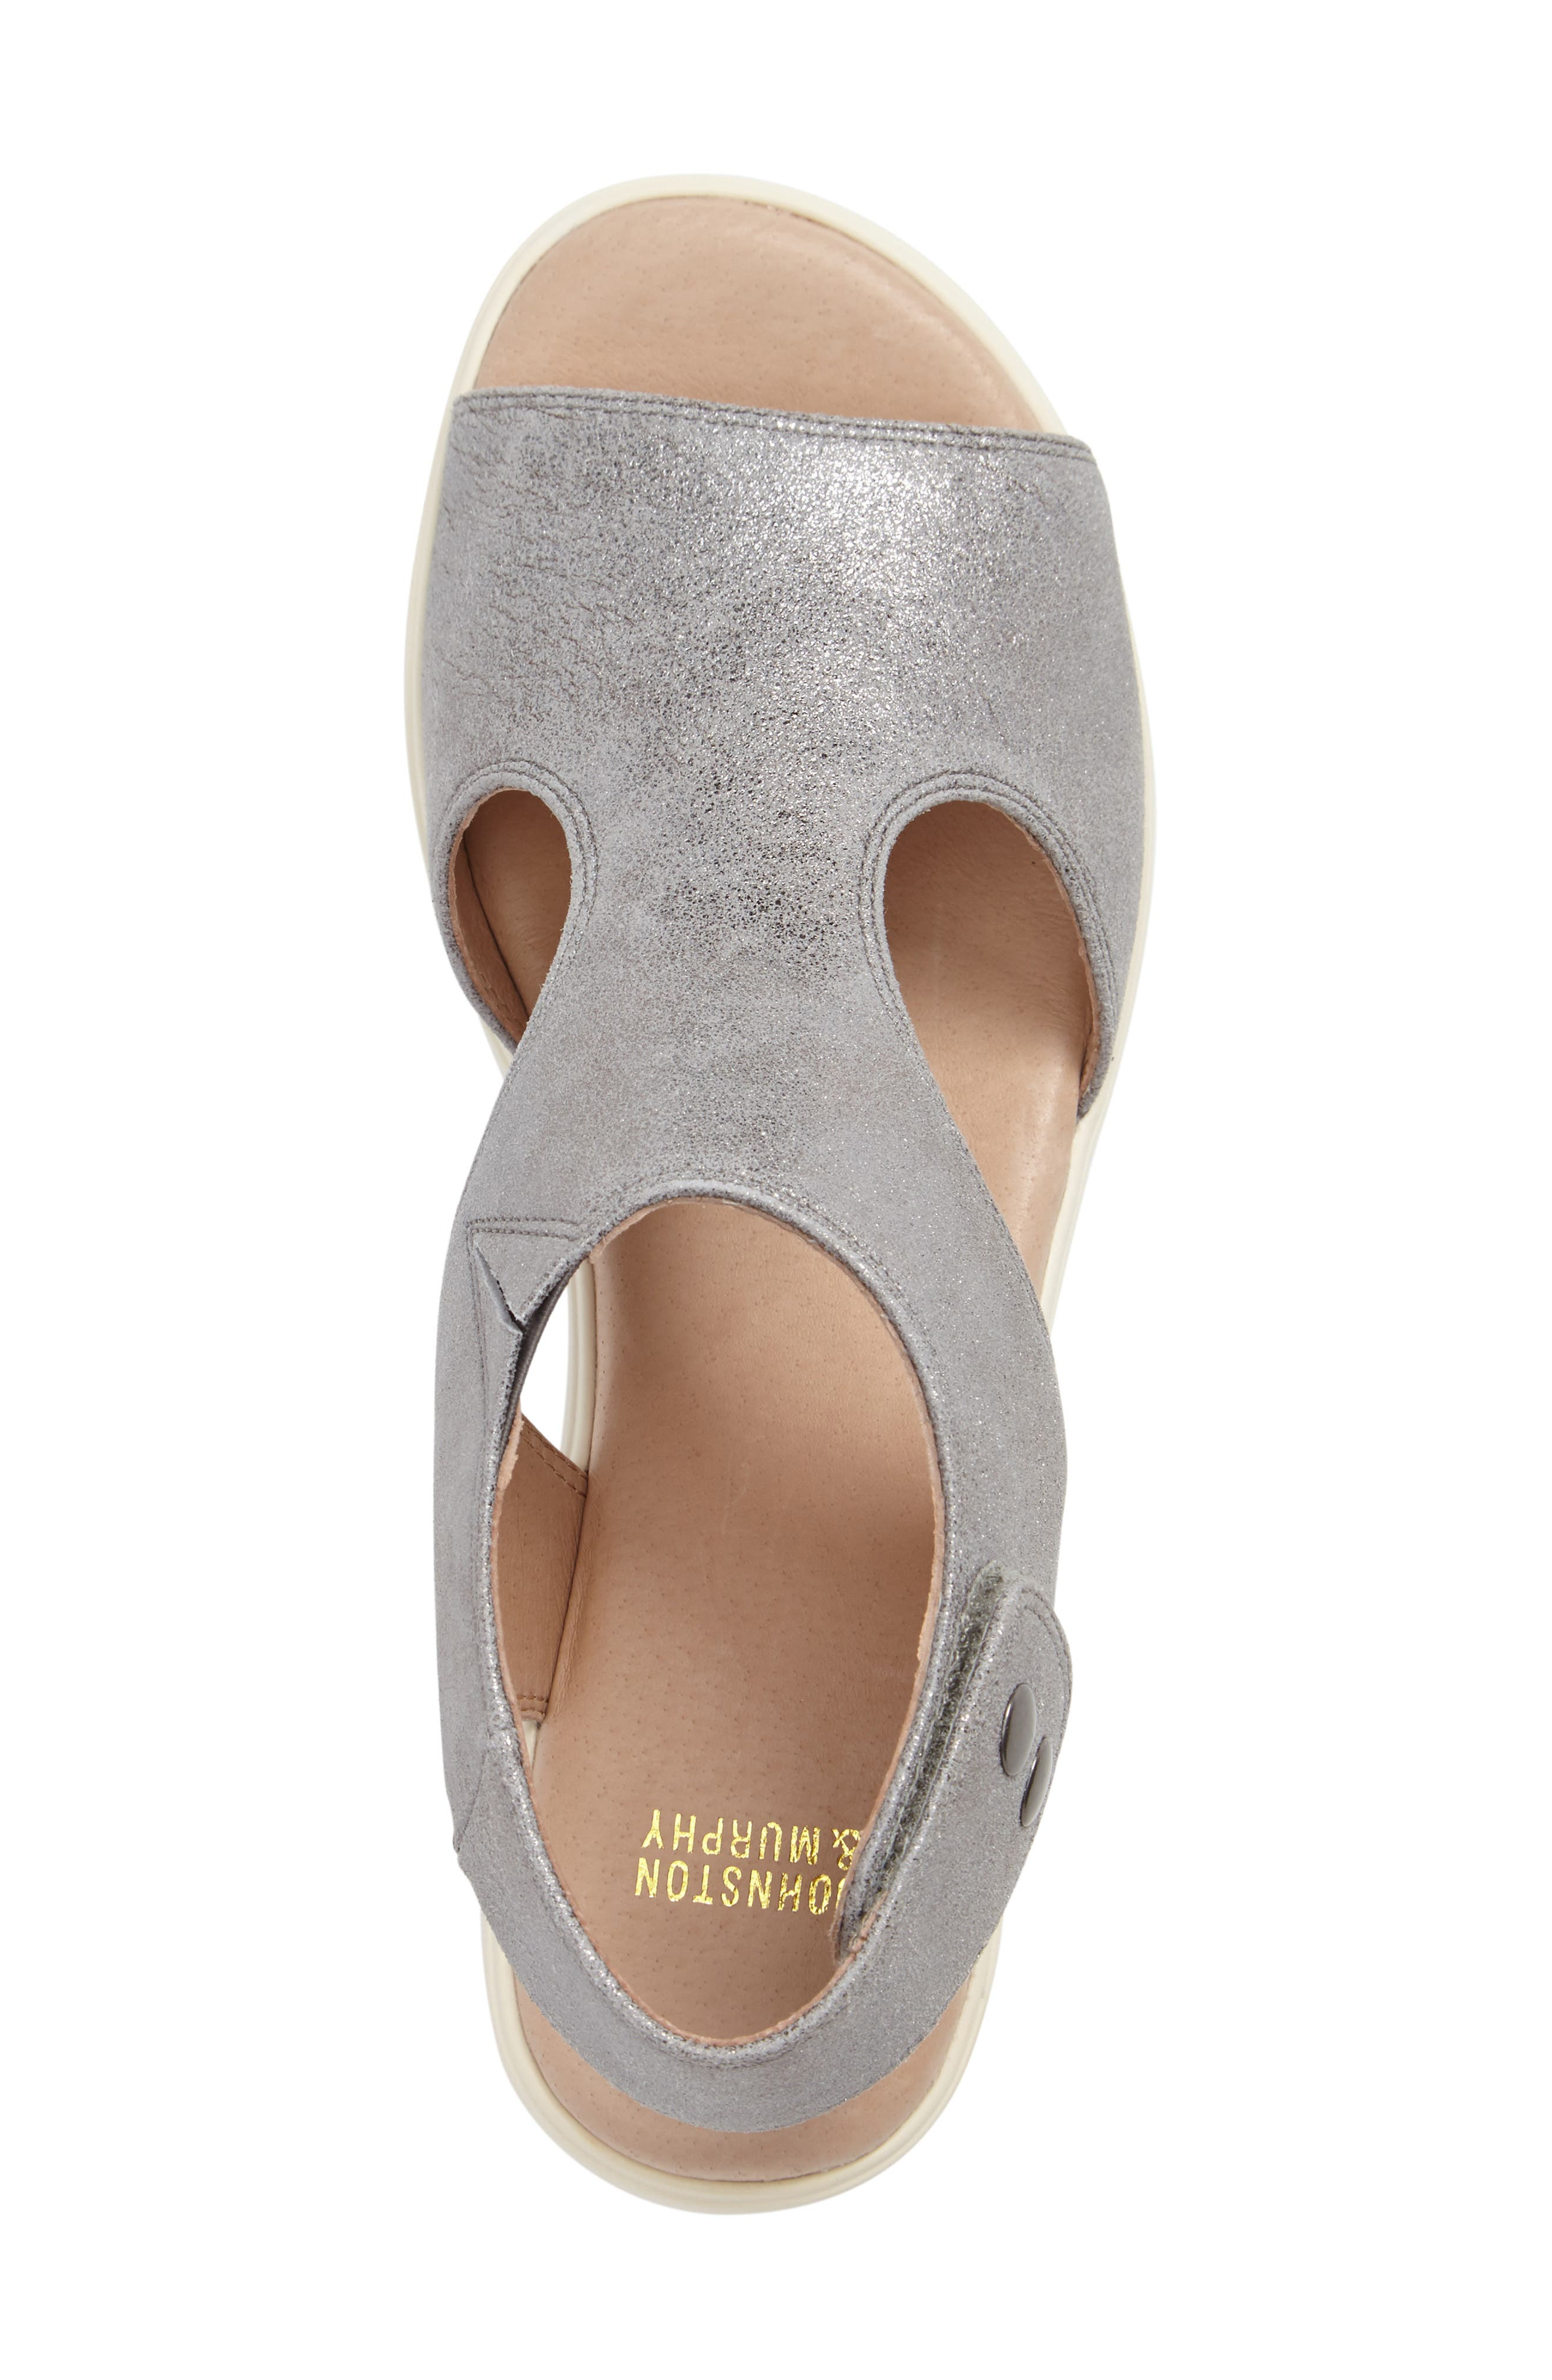 Camilla Slingback Wedge Sandal,                             Alternate thumbnail 3, color,                             SILVER METALLIC SUEDE